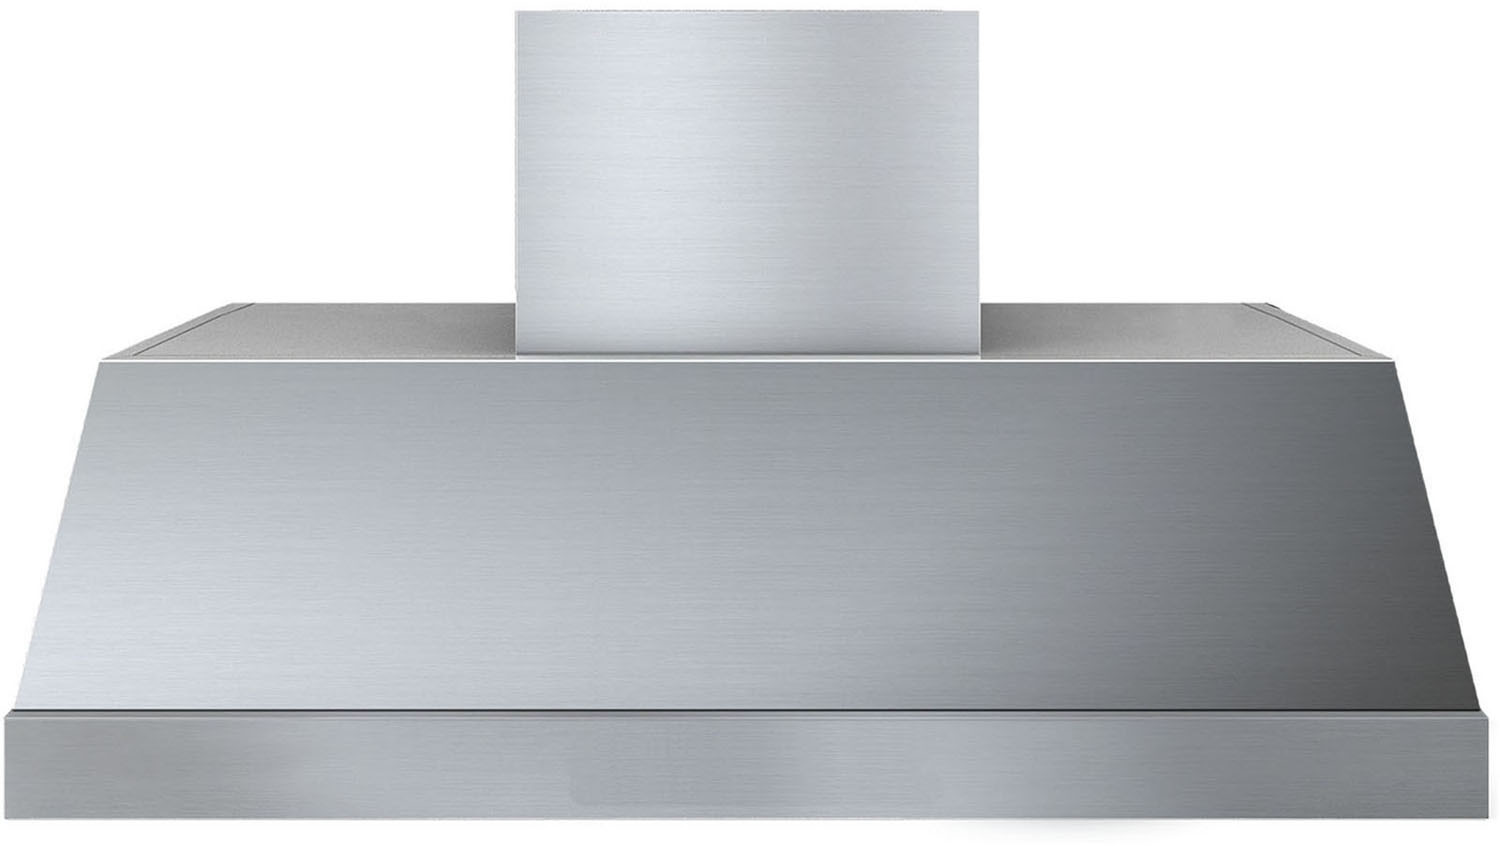 Undermount Rangehood Reviews Superiore Hp301sss 30 Inch Wallmount Or Undermount Hood